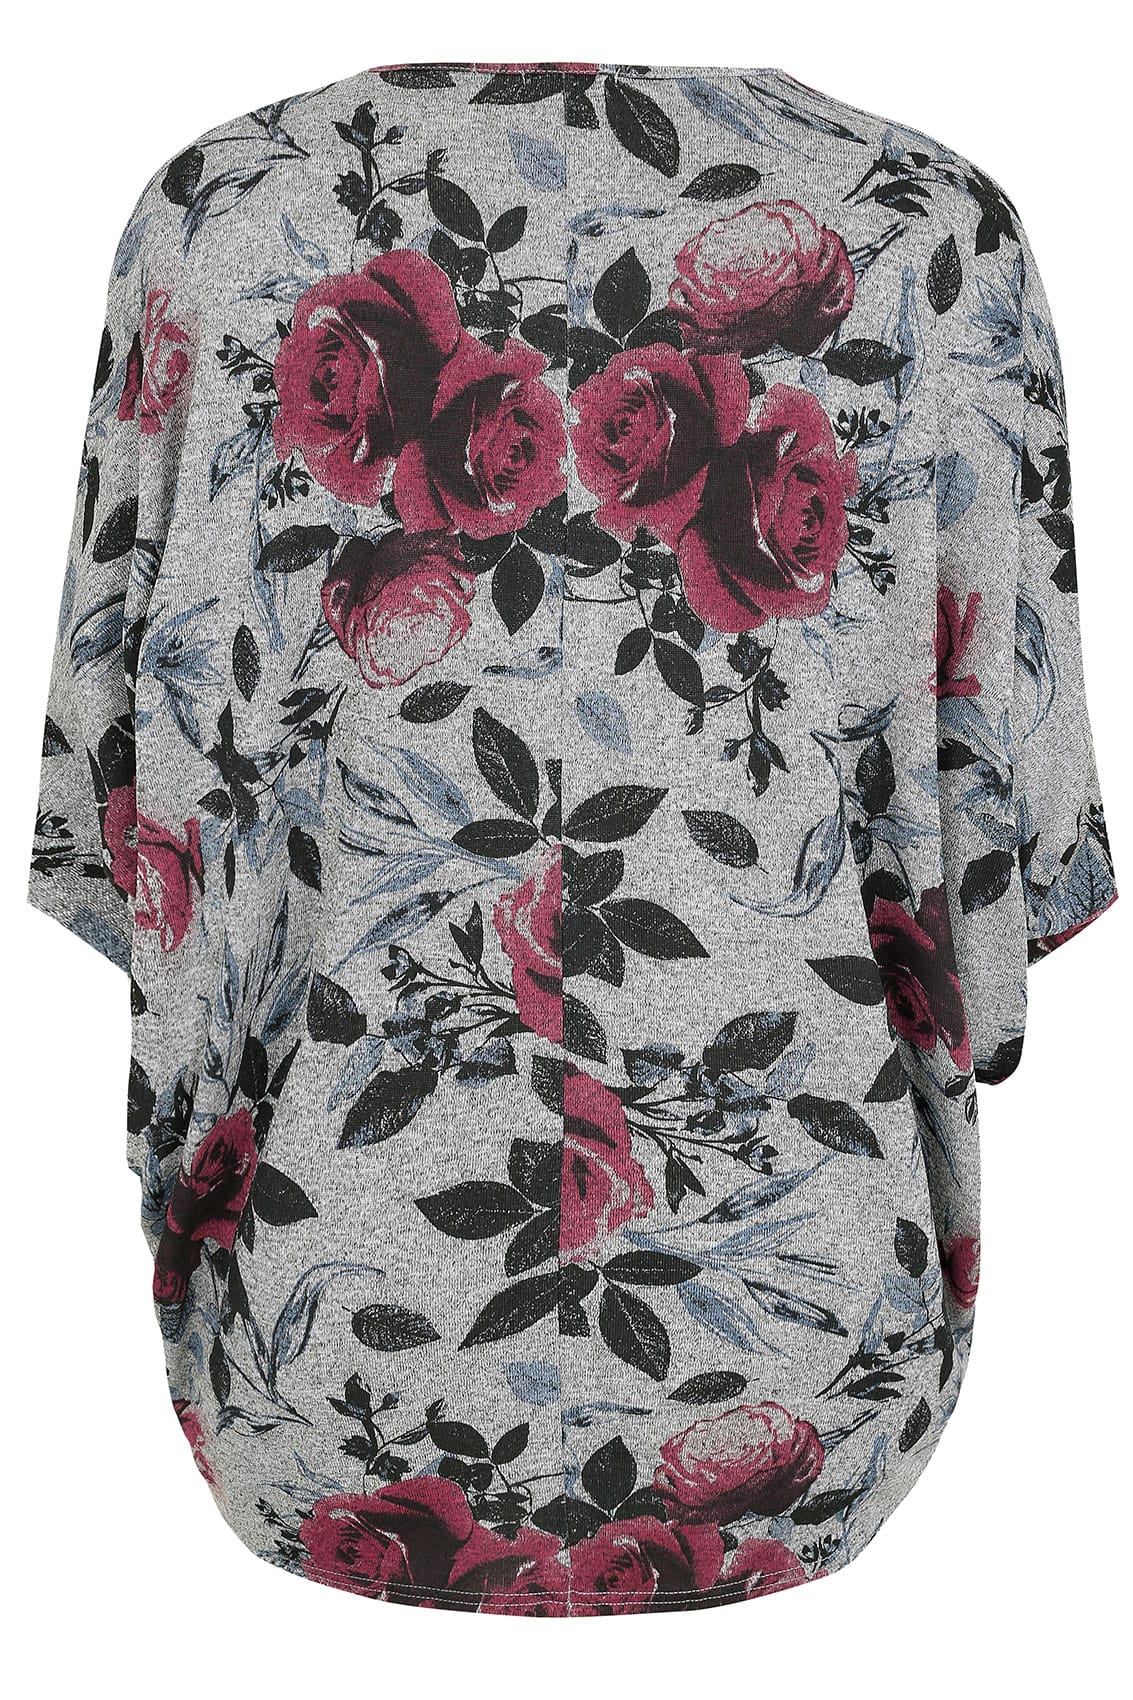 grey floral print v neck longline top with batwing sleeves plus size 16 to 36. Black Bedroom Furniture Sets. Home Design Ideas